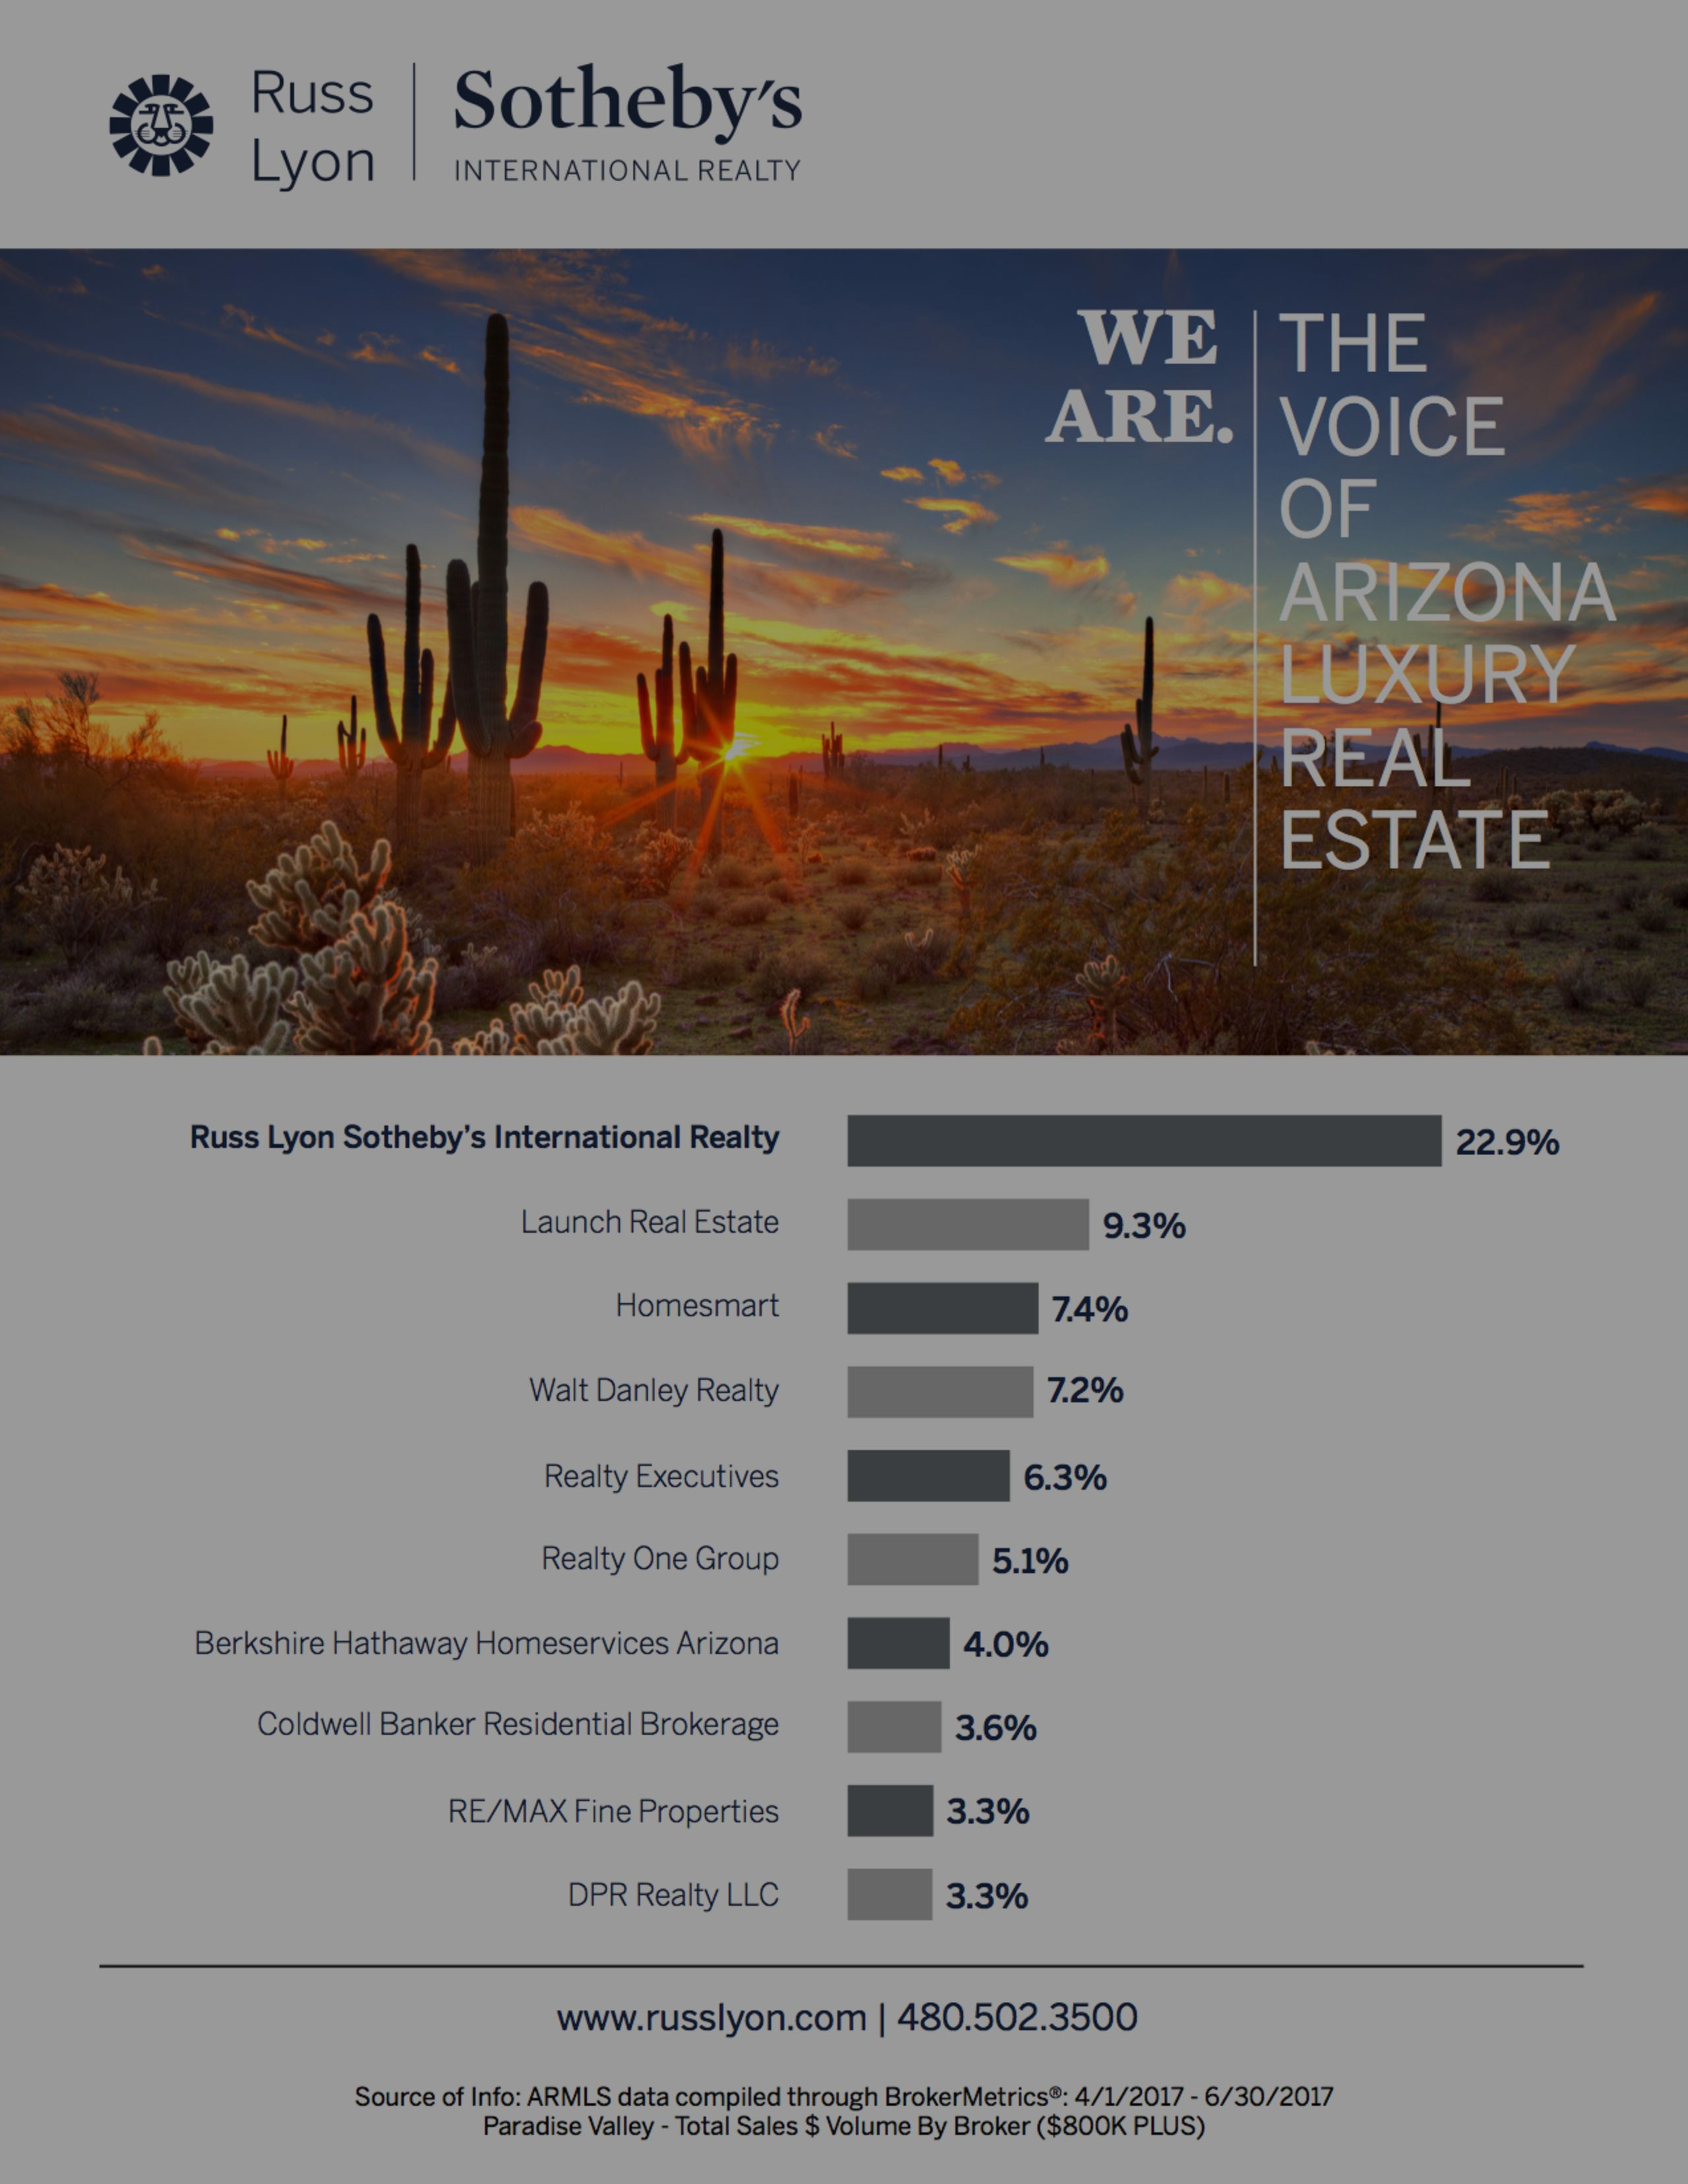 Market Share Paradise Valley 2nd Quarter 2017